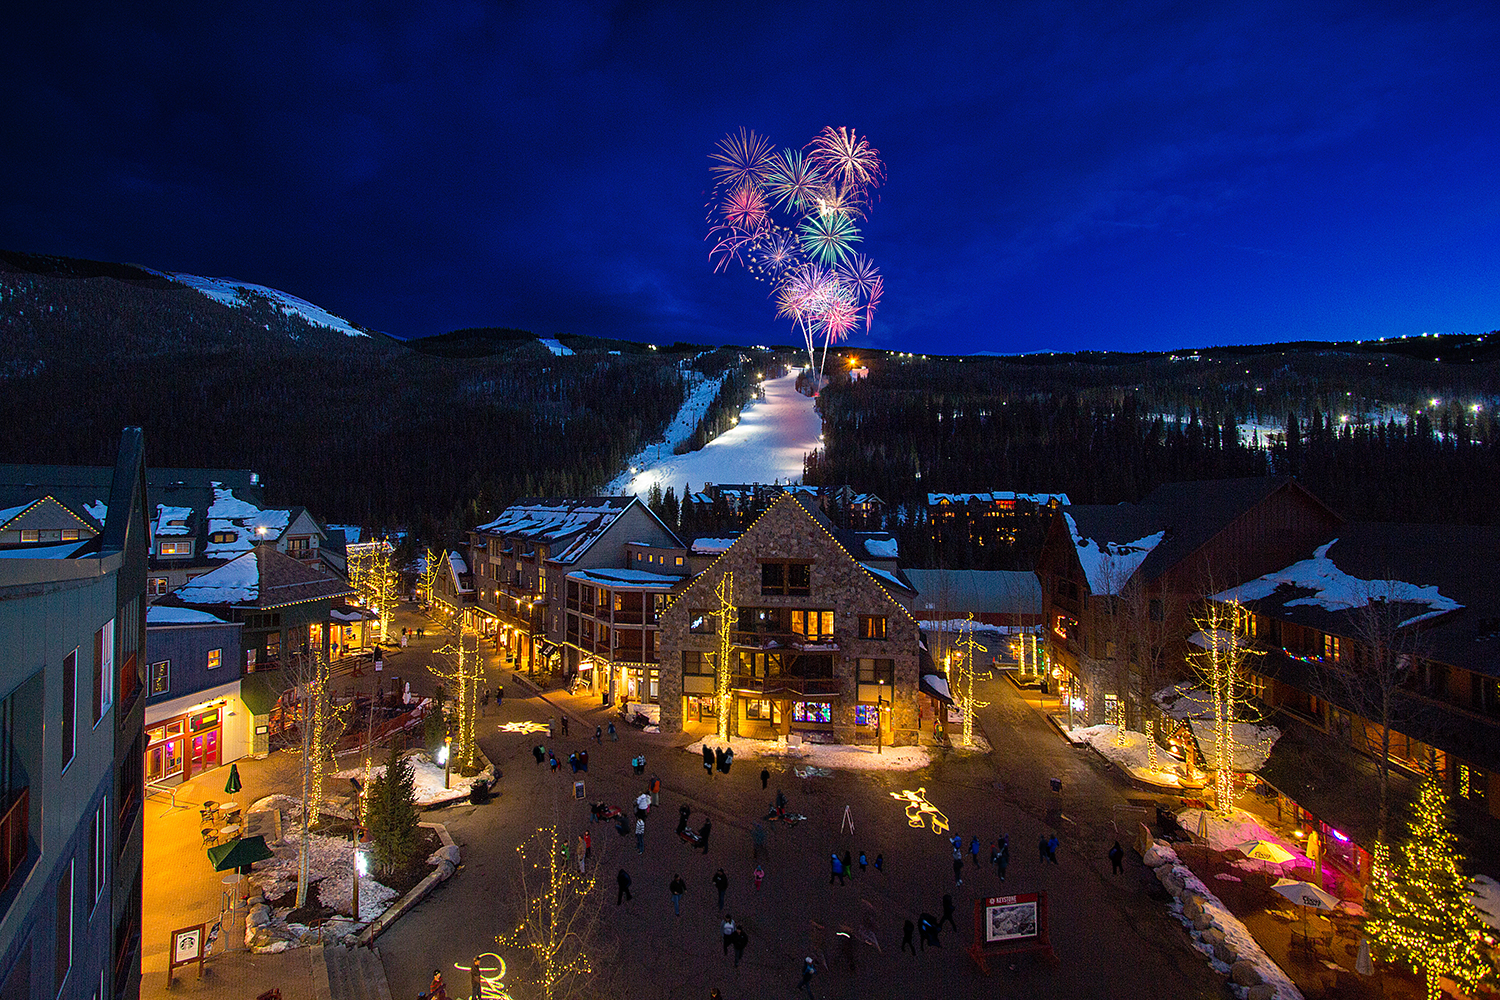 Fireworks lighting up the night sky at Keystone Resort.